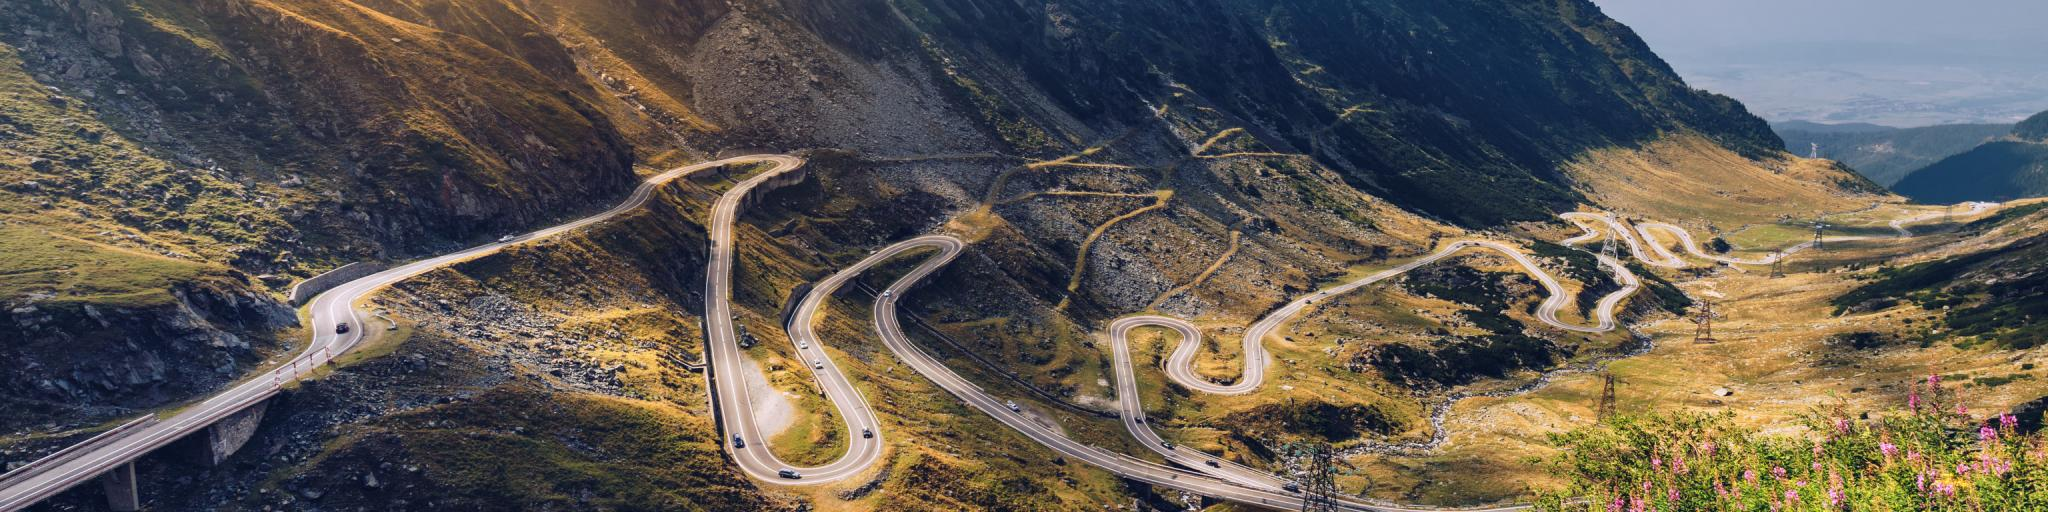 Top European road trips to drive - Transfagarasan pass